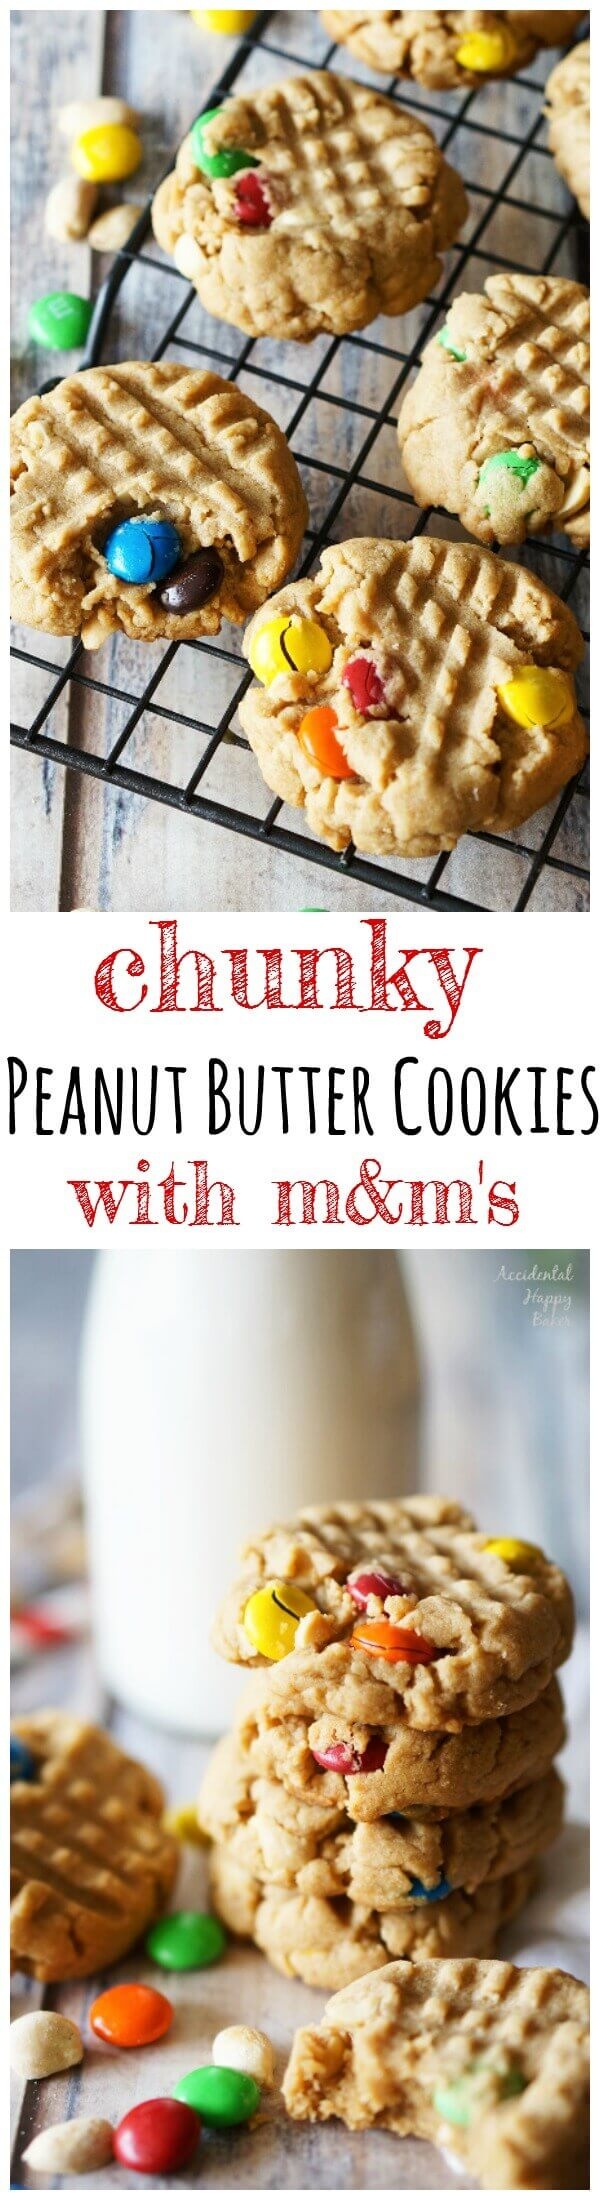 Chunky-Peanut-Butter-Cookies-with-M&M's